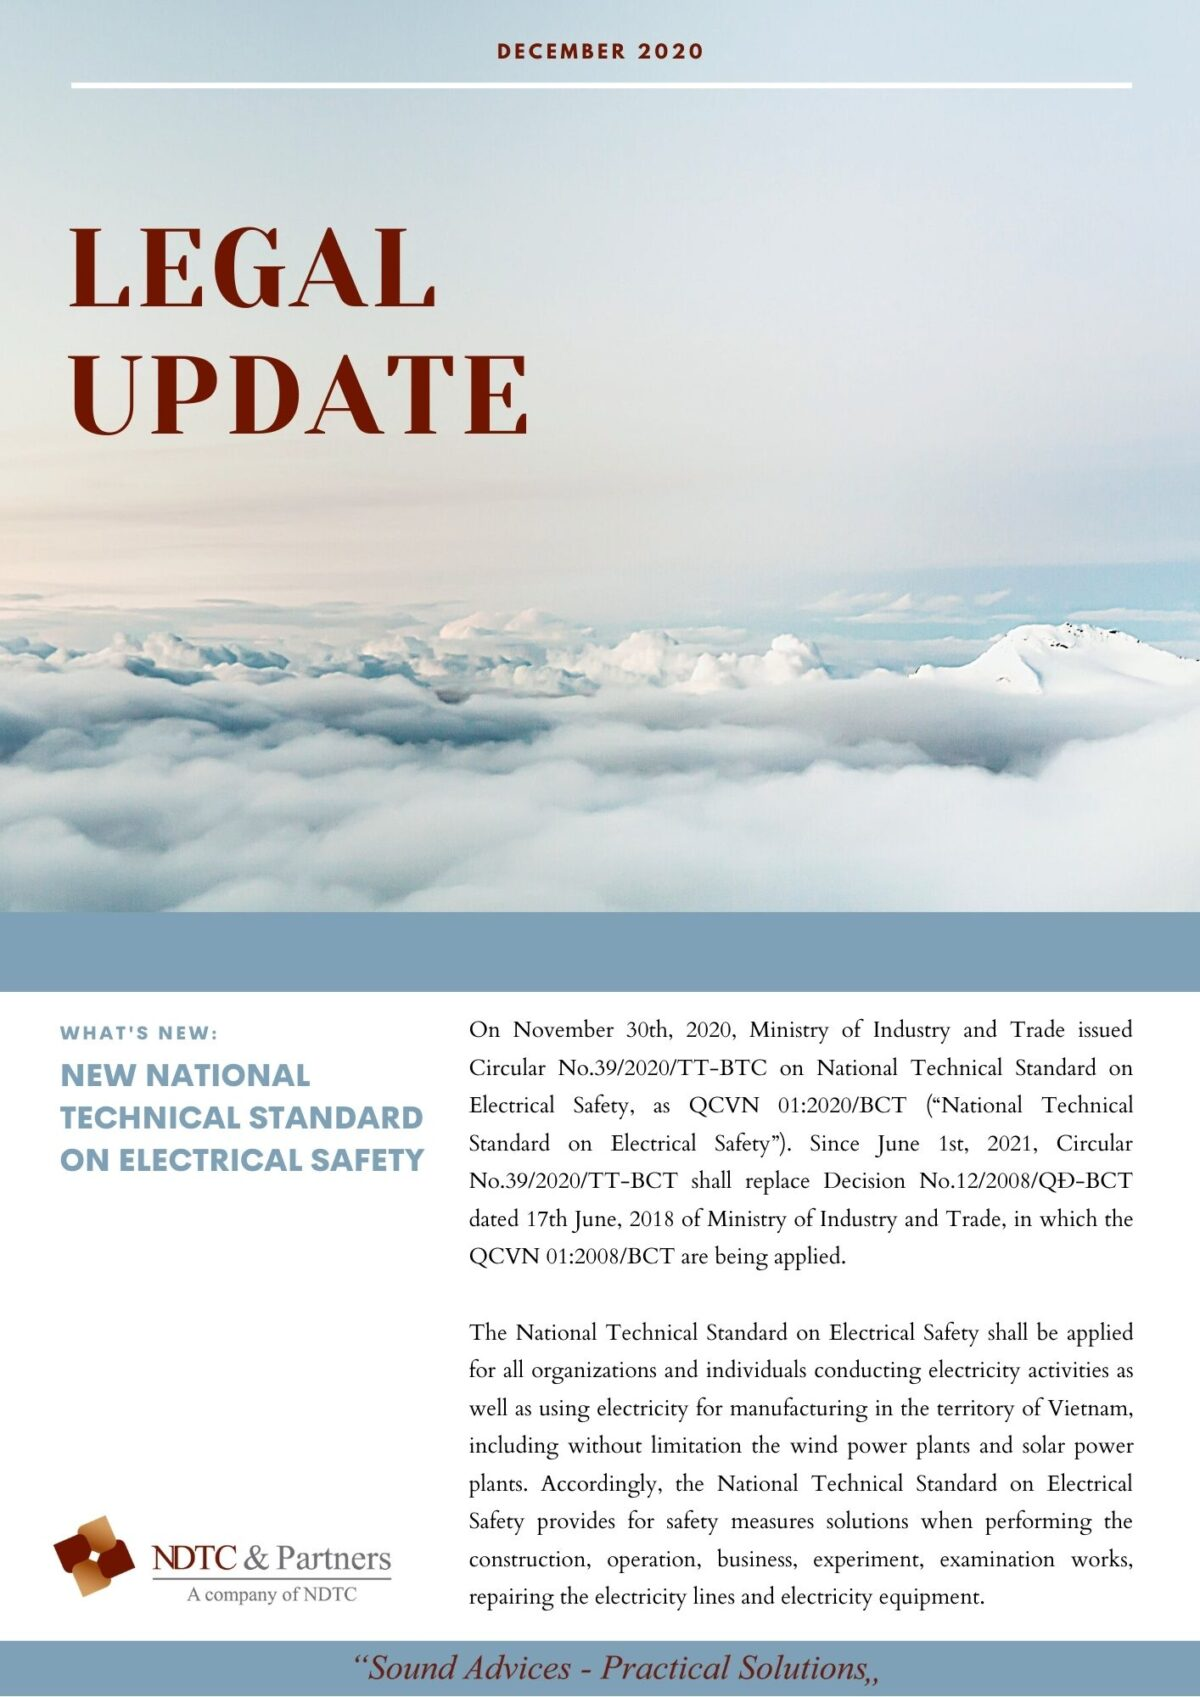 Legal Update Dec 2020